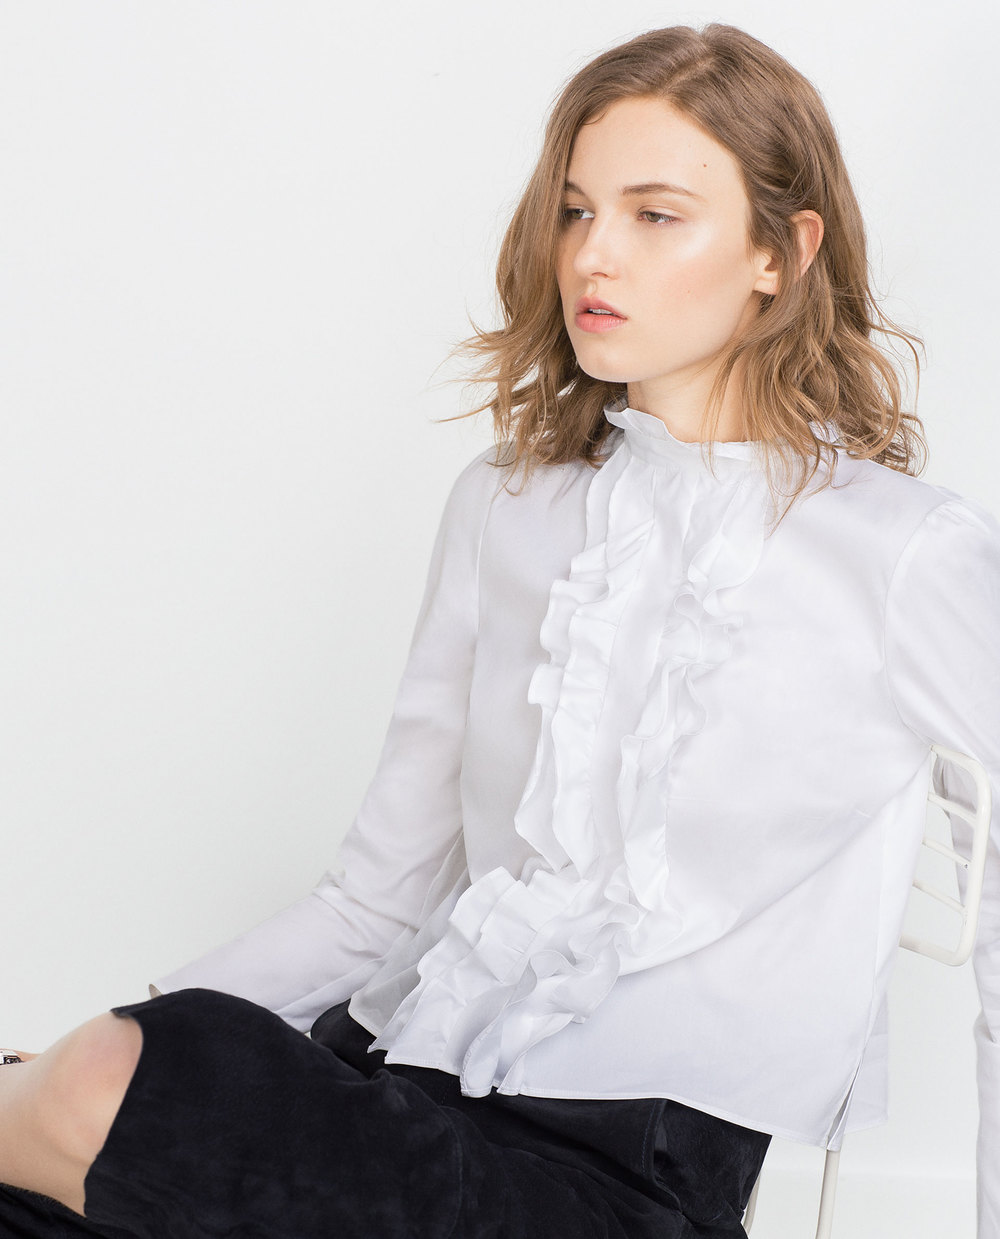 ROSE & IVY Journal Zara Fall 2015